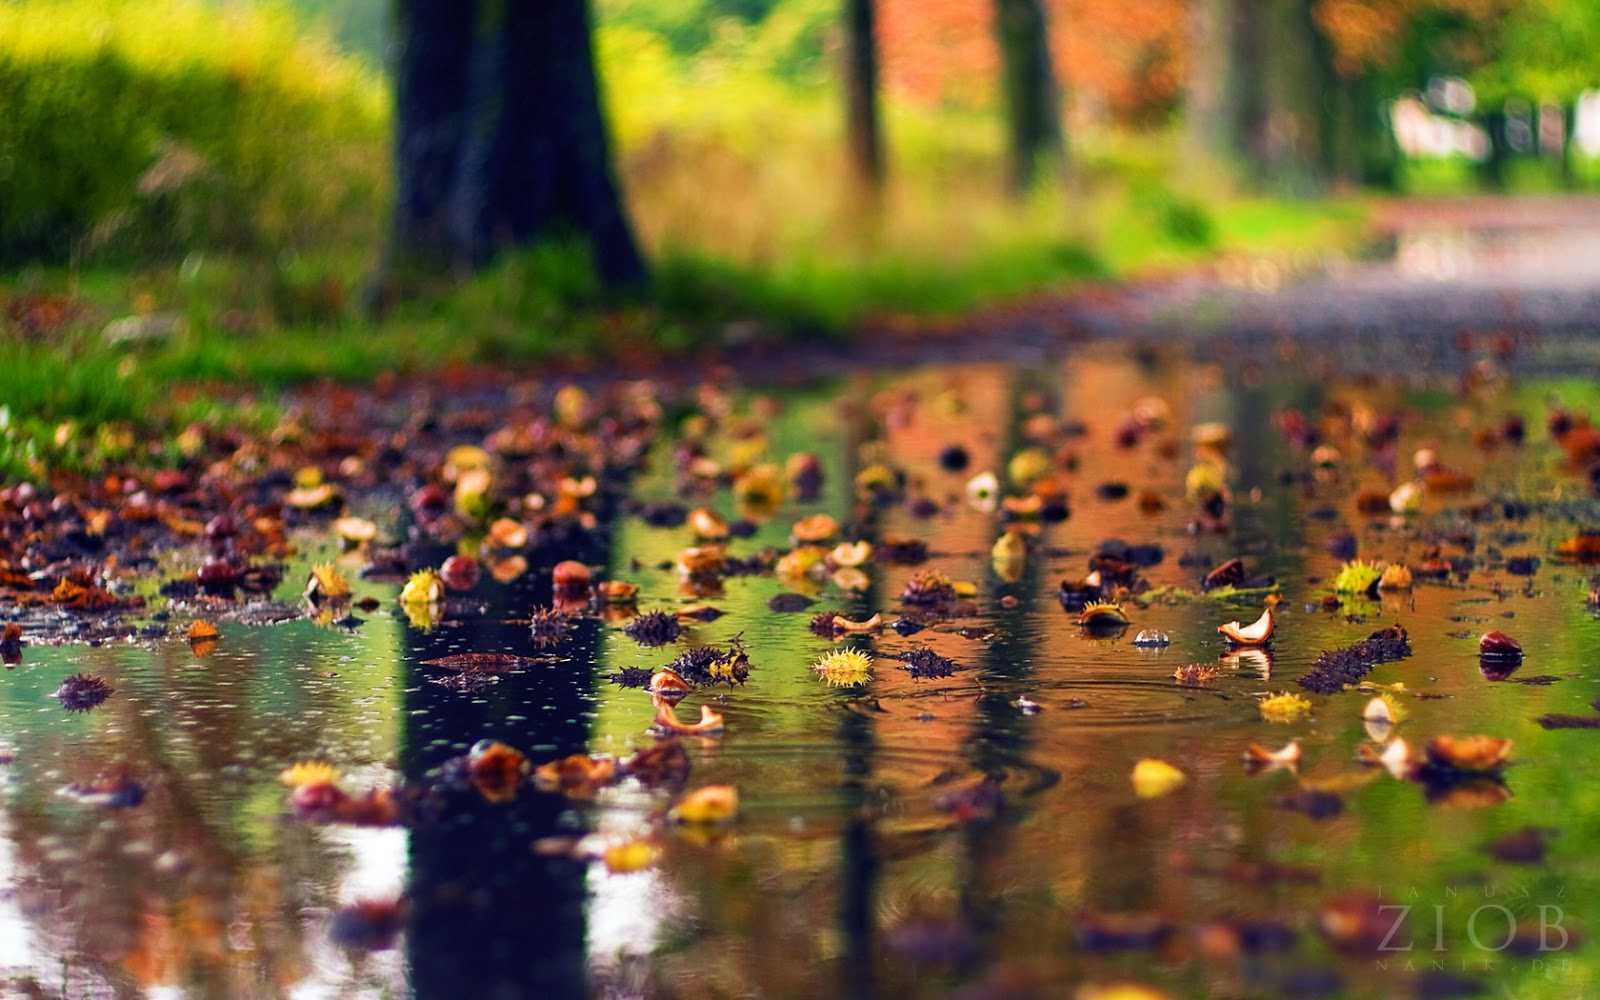 rainy season hd wallpaper free download nice season hd beautiful ...